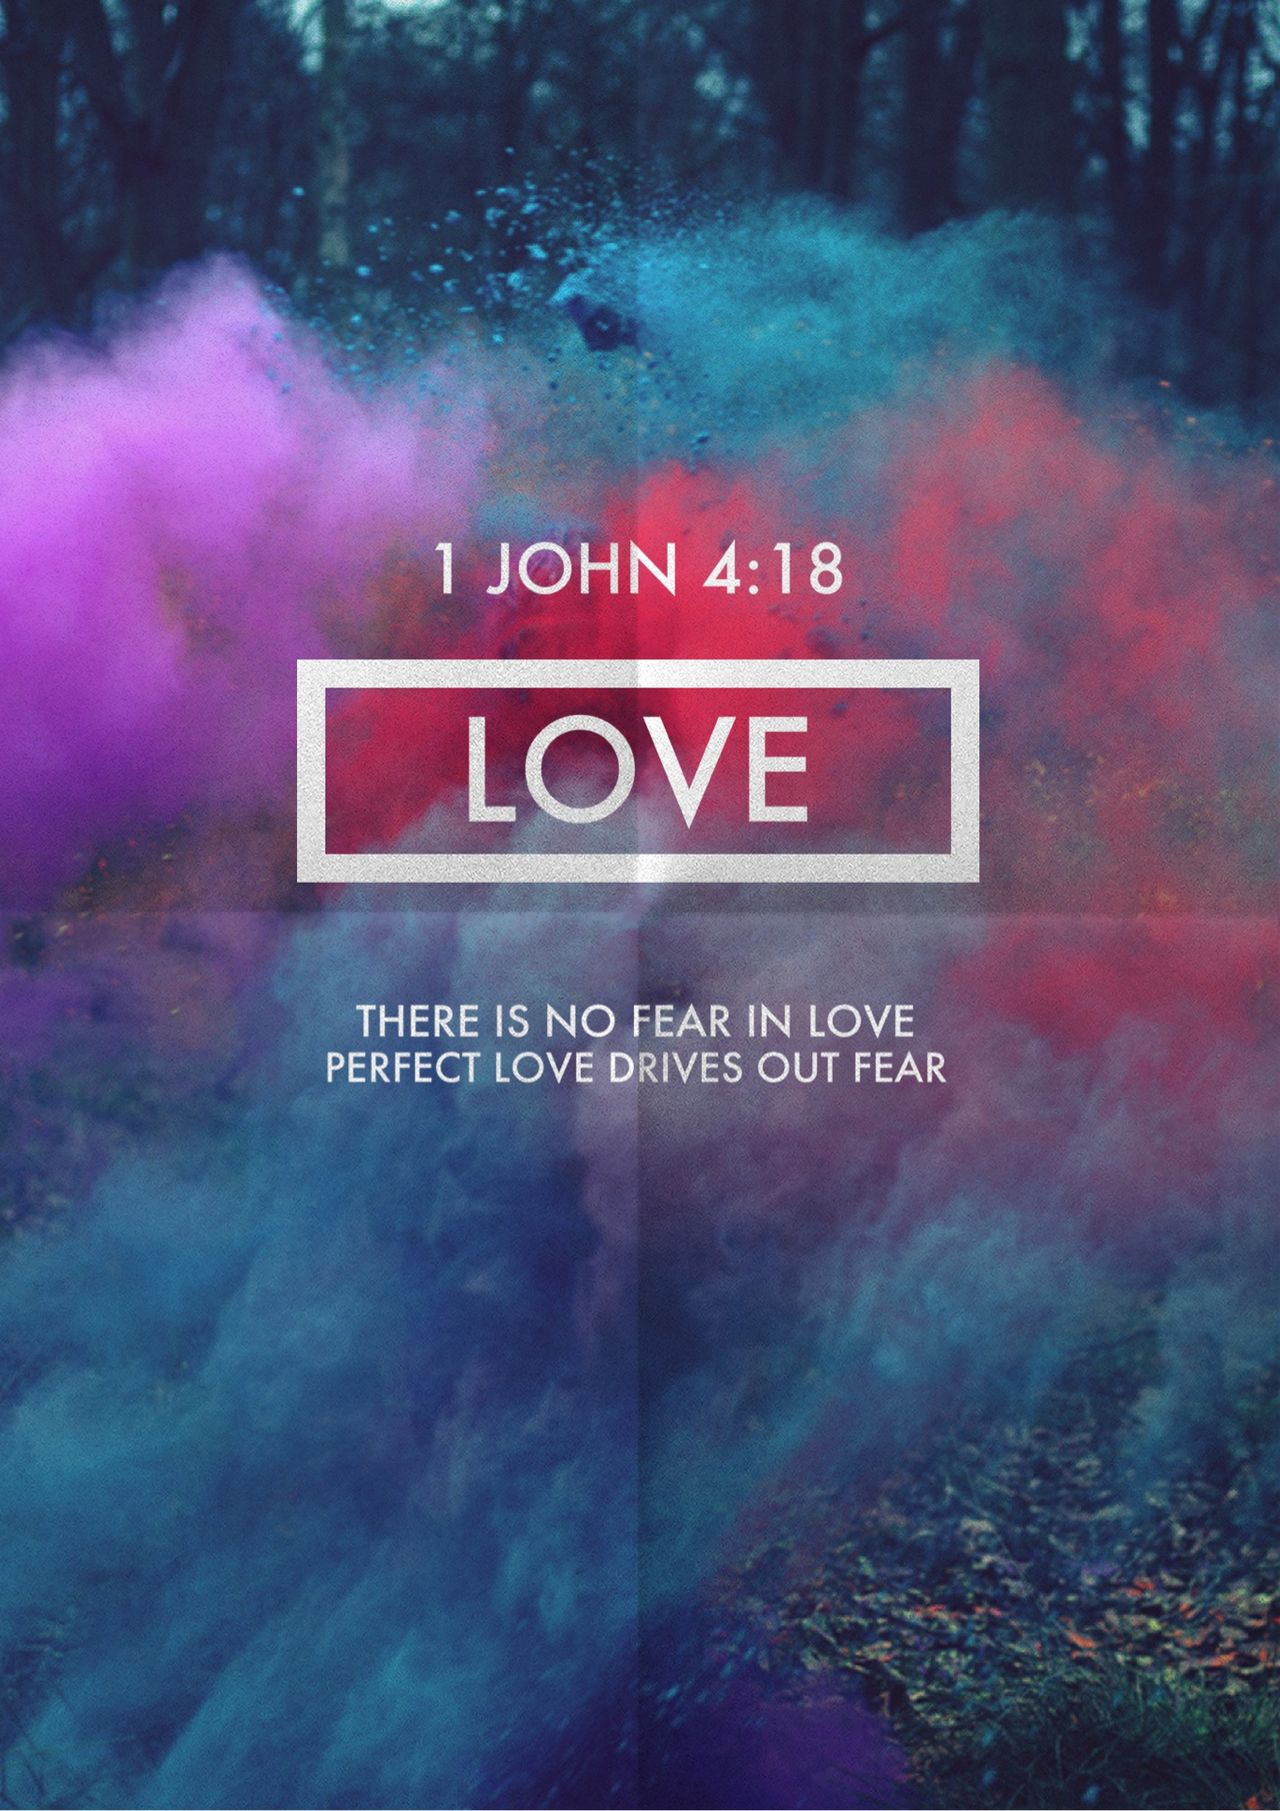 Perfect love drives out fear love shereadstruth